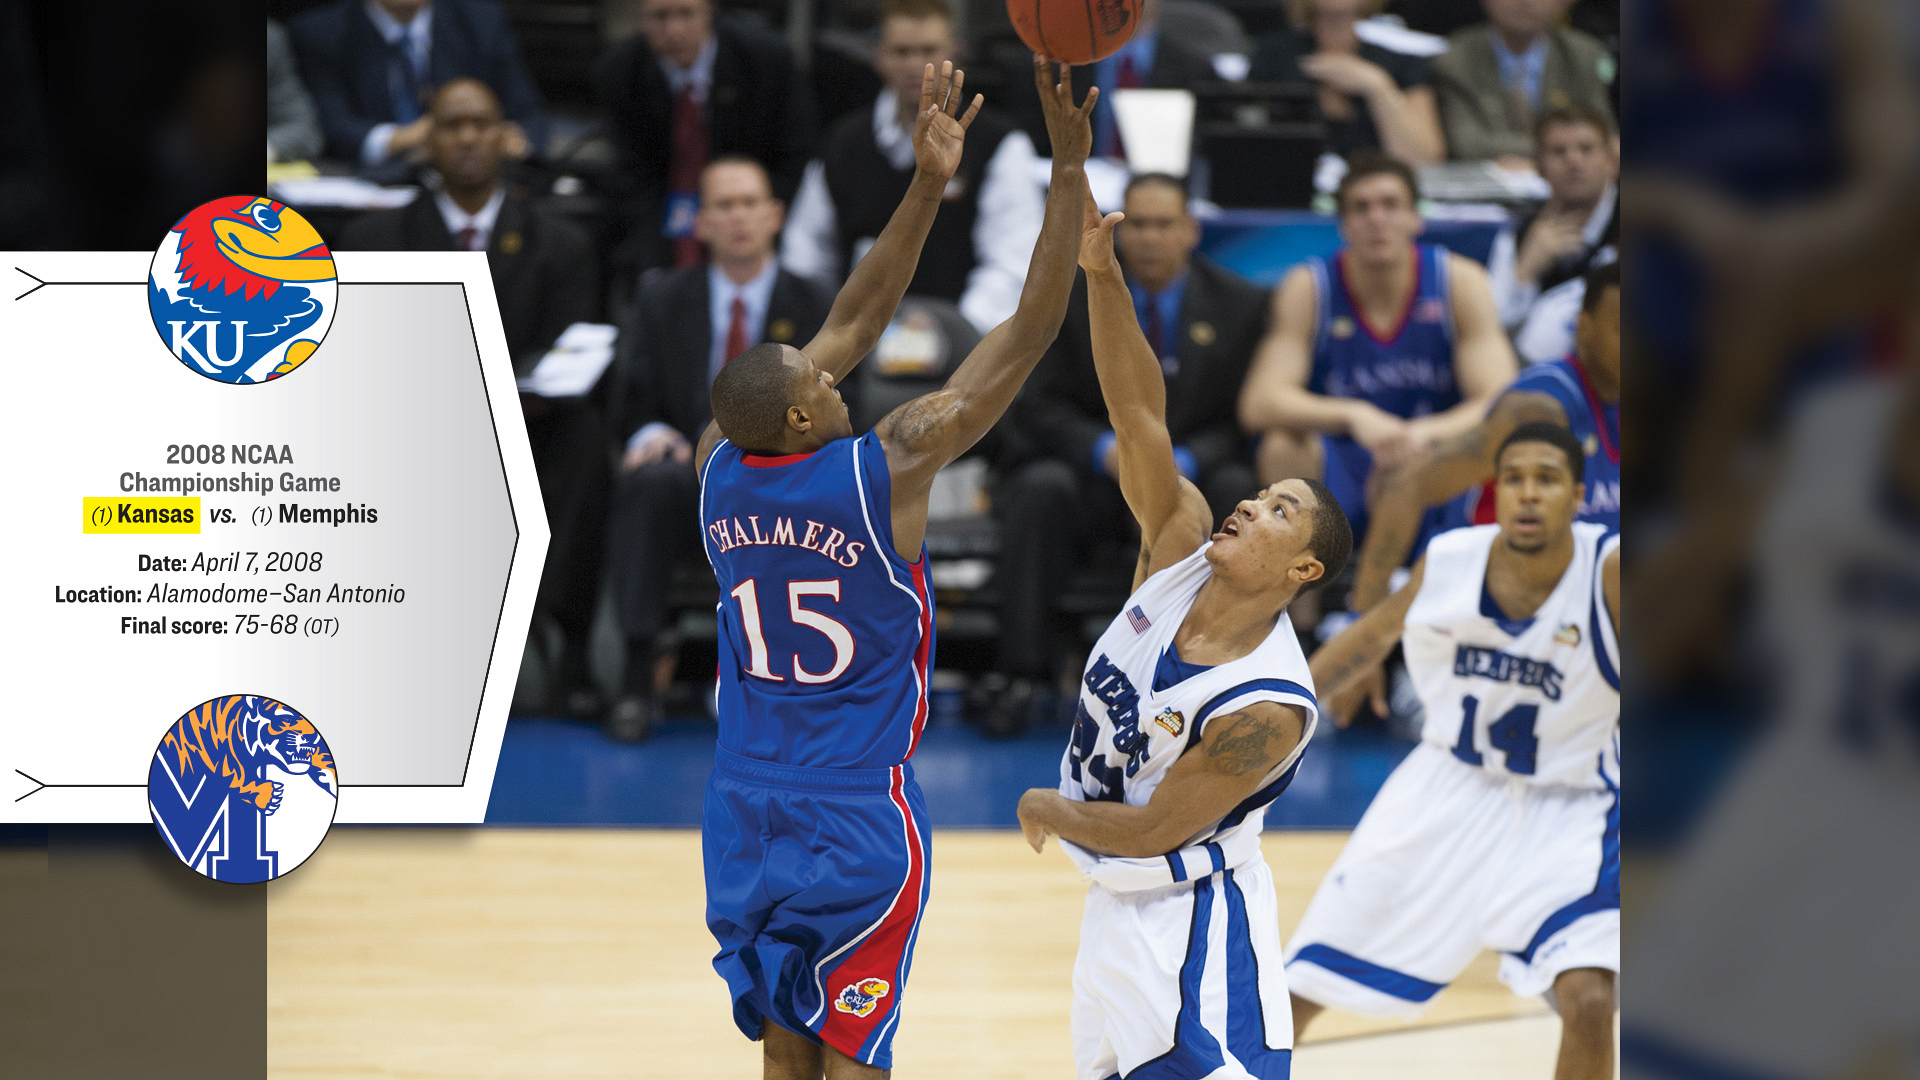 84e602c3841b 10 Of The Most Memorable Moments In March Madness Tournament History - Page  5 - Watch! Magazine Photos - CBS.com